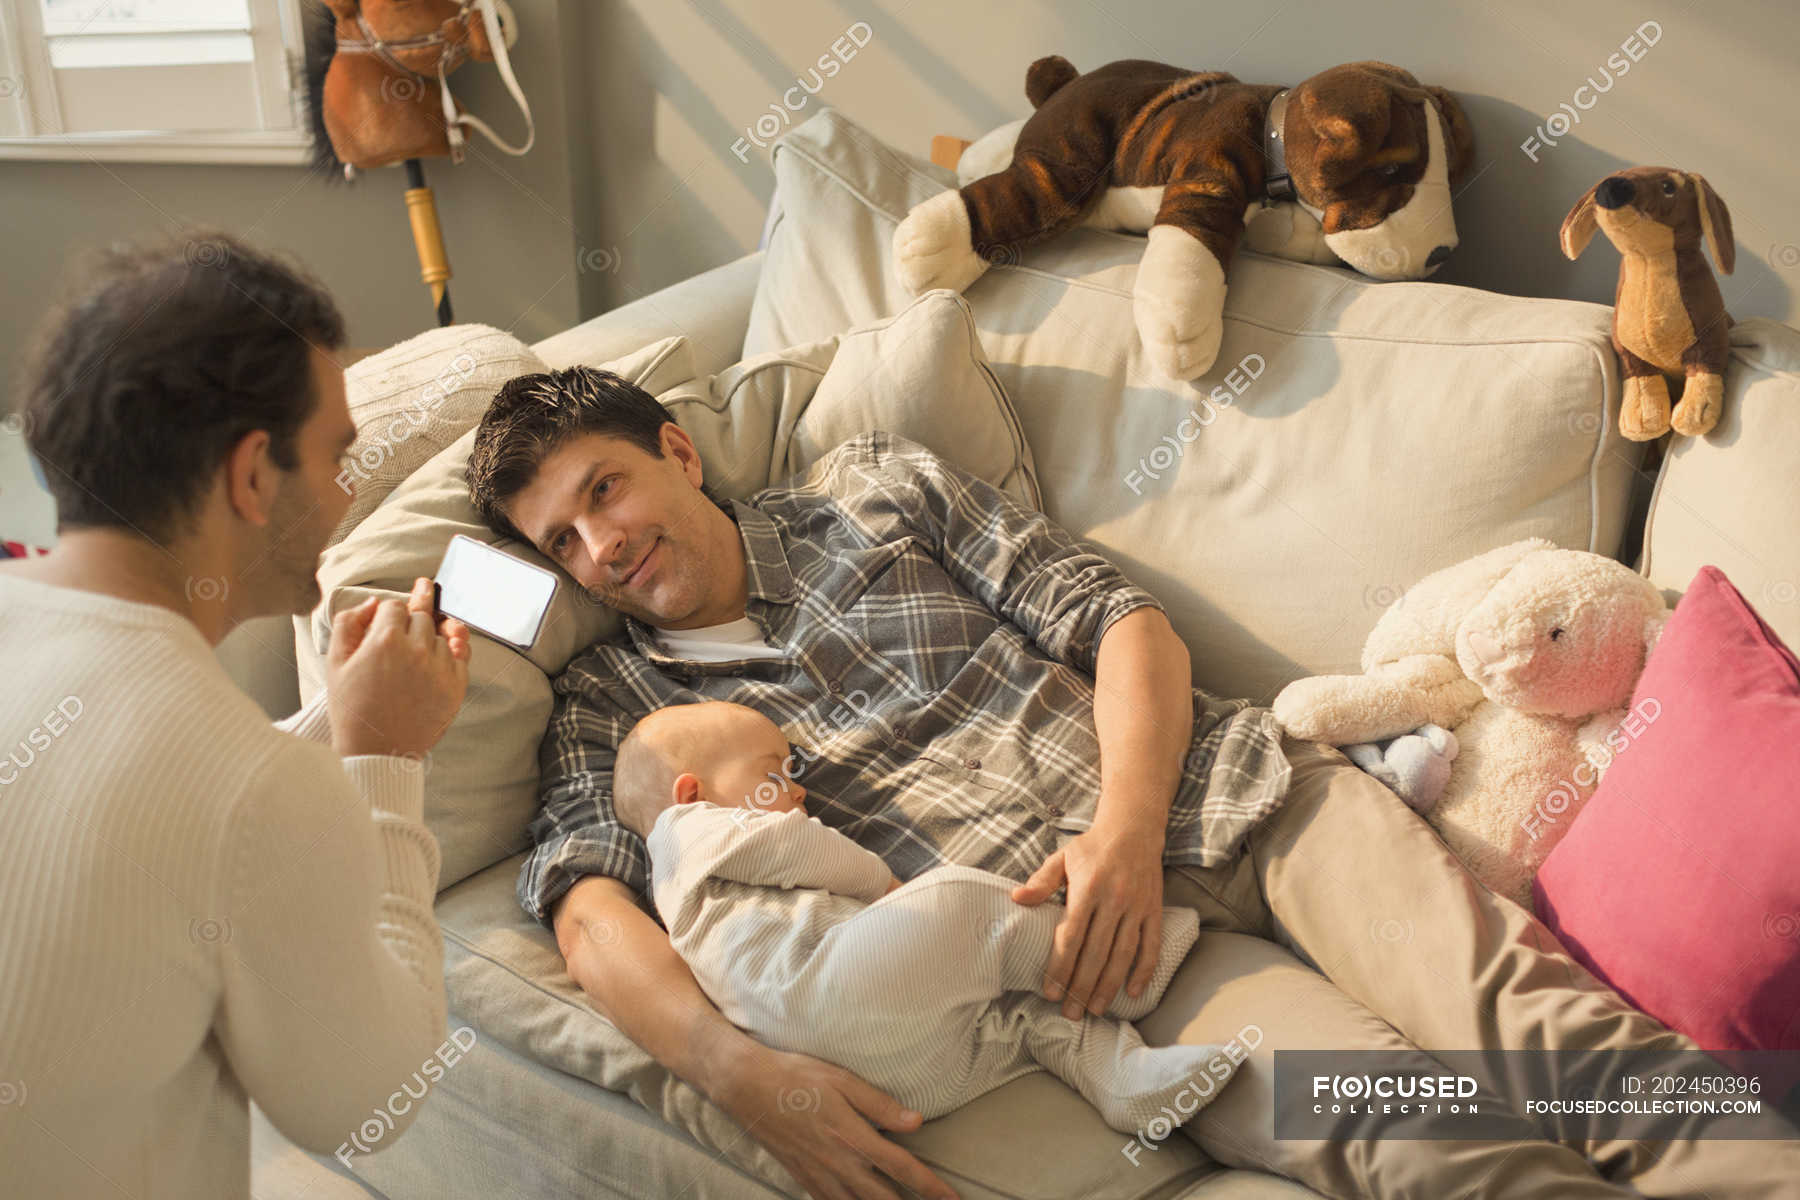 Male Gay Parents And Baby Son Resting On Living Room Sofa High